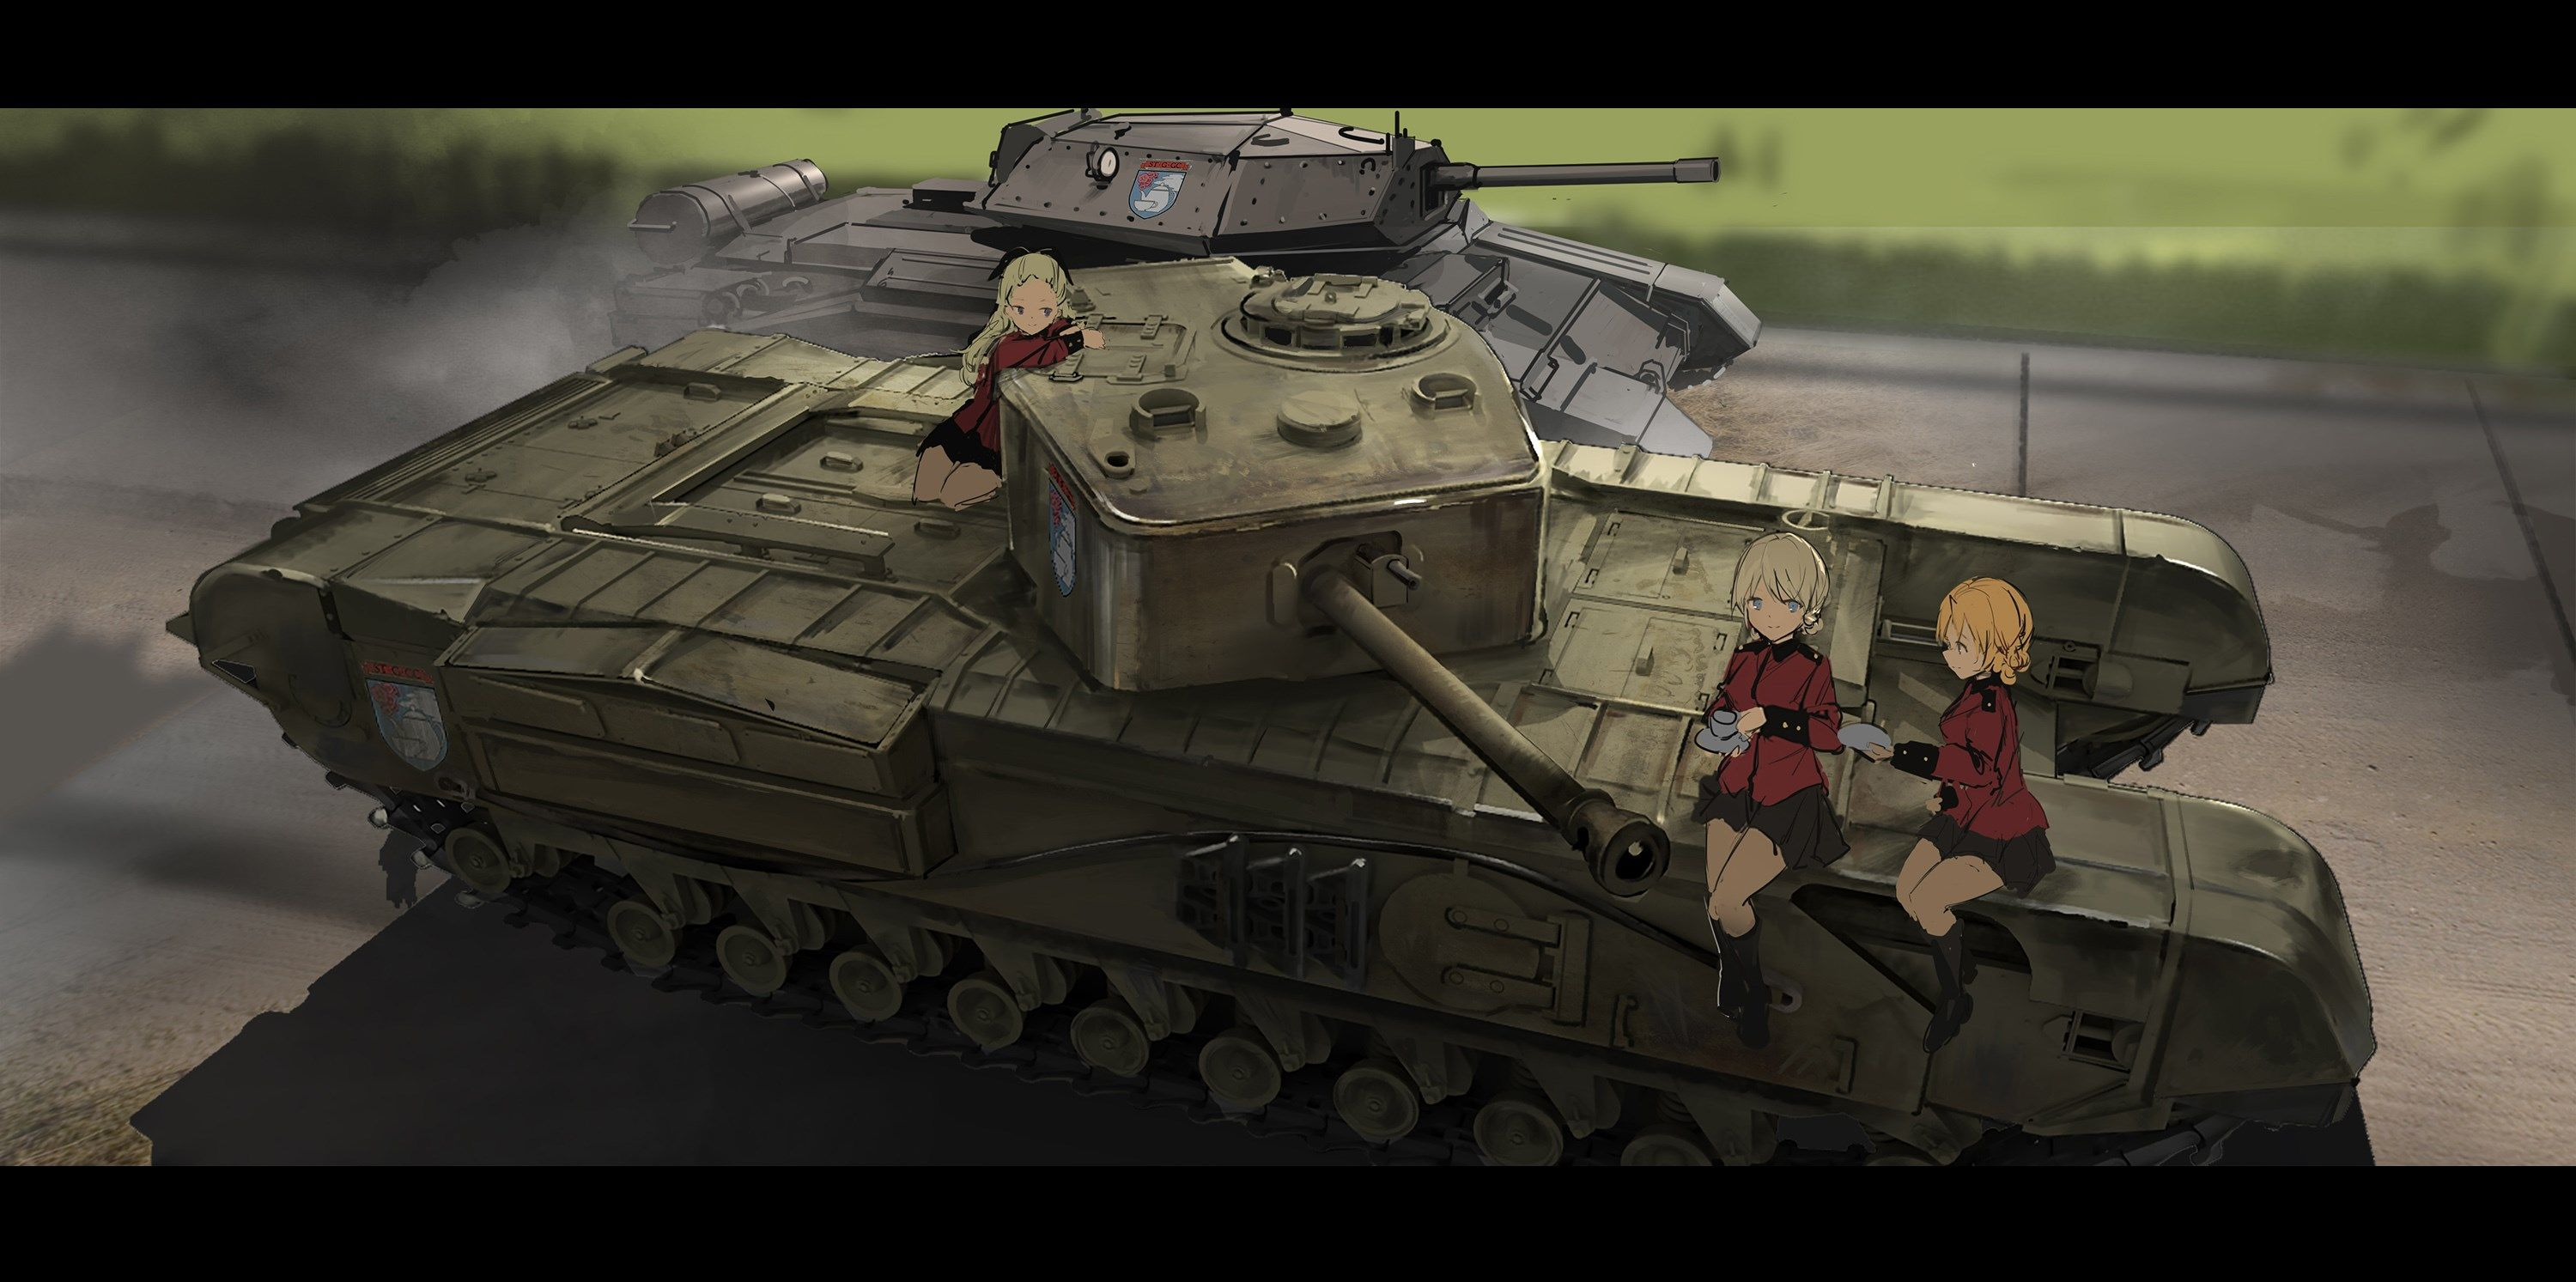 Free Computer Girls Und Panzer Wallpaper Darnell Birds 3000x1493